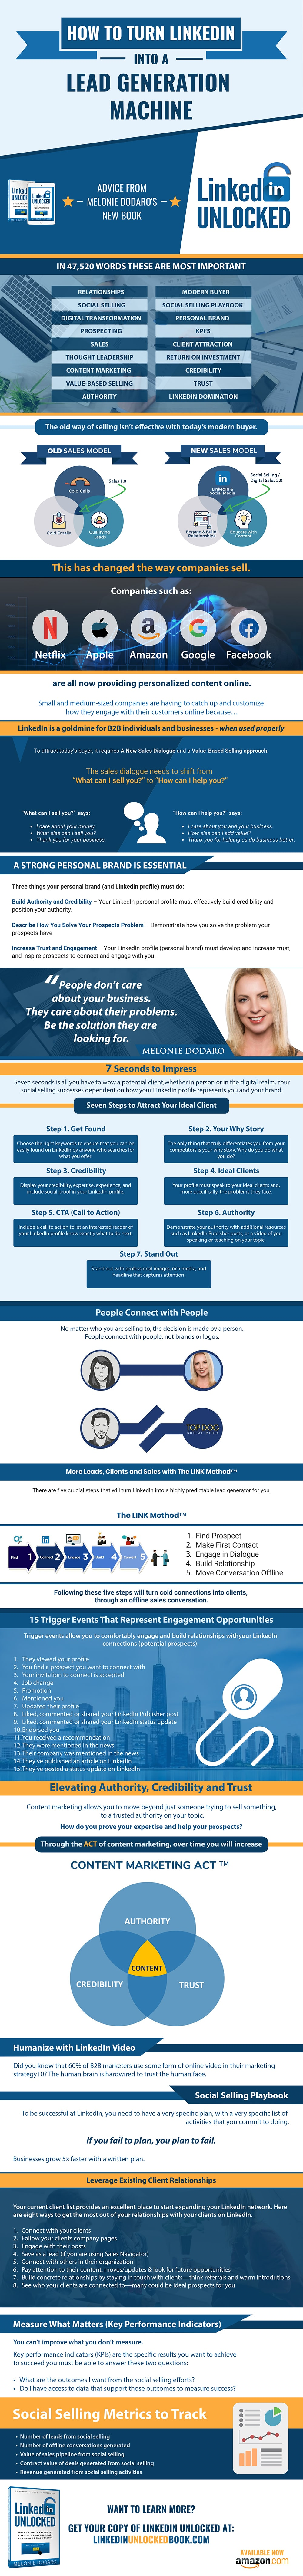 Infographic: How to turn LinkedIn into a lead generation machine